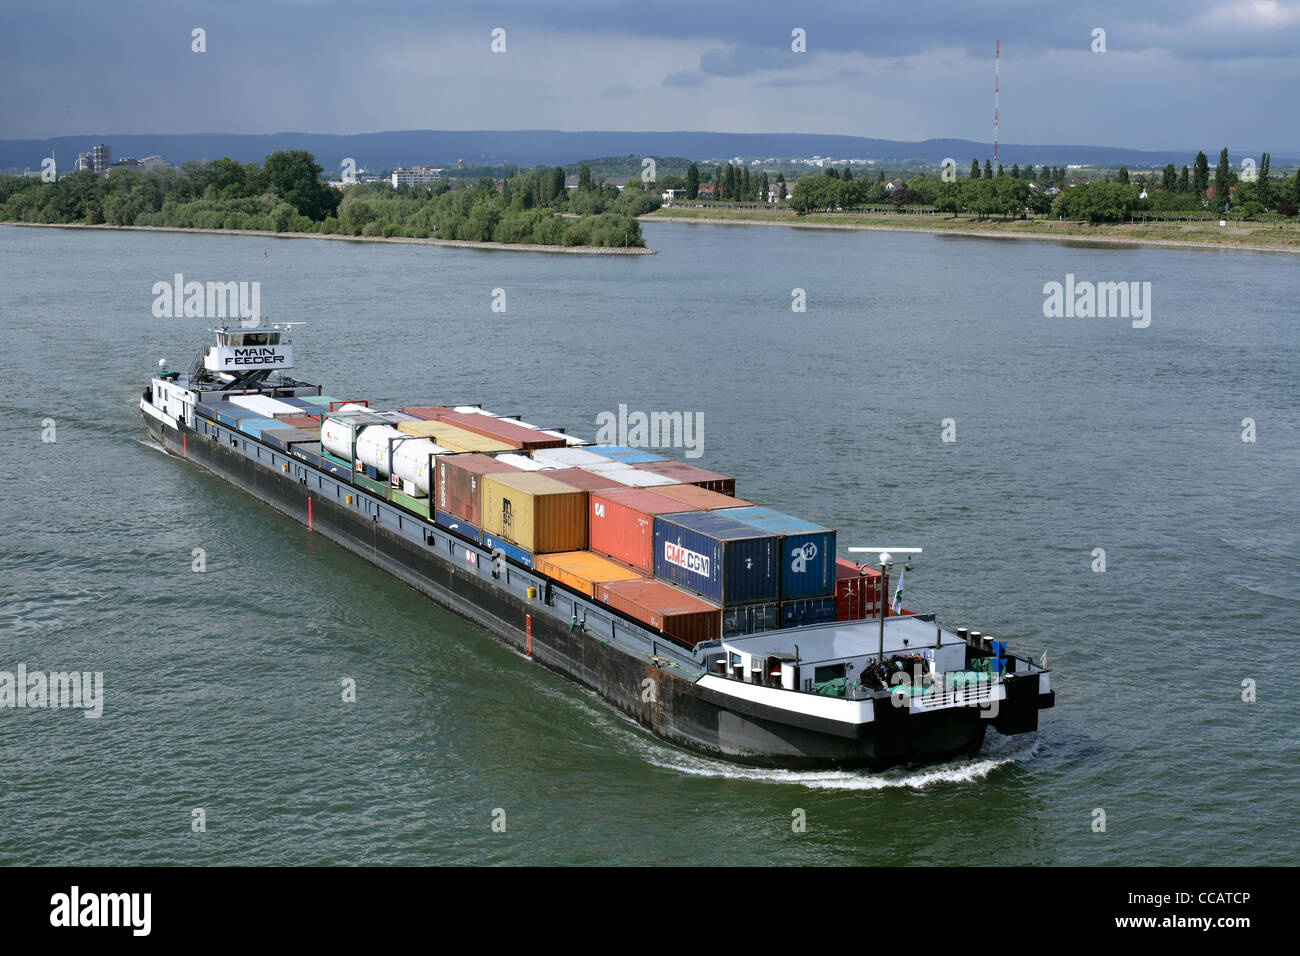 Container ship on the River Rhine at Mainz, Germany Stock